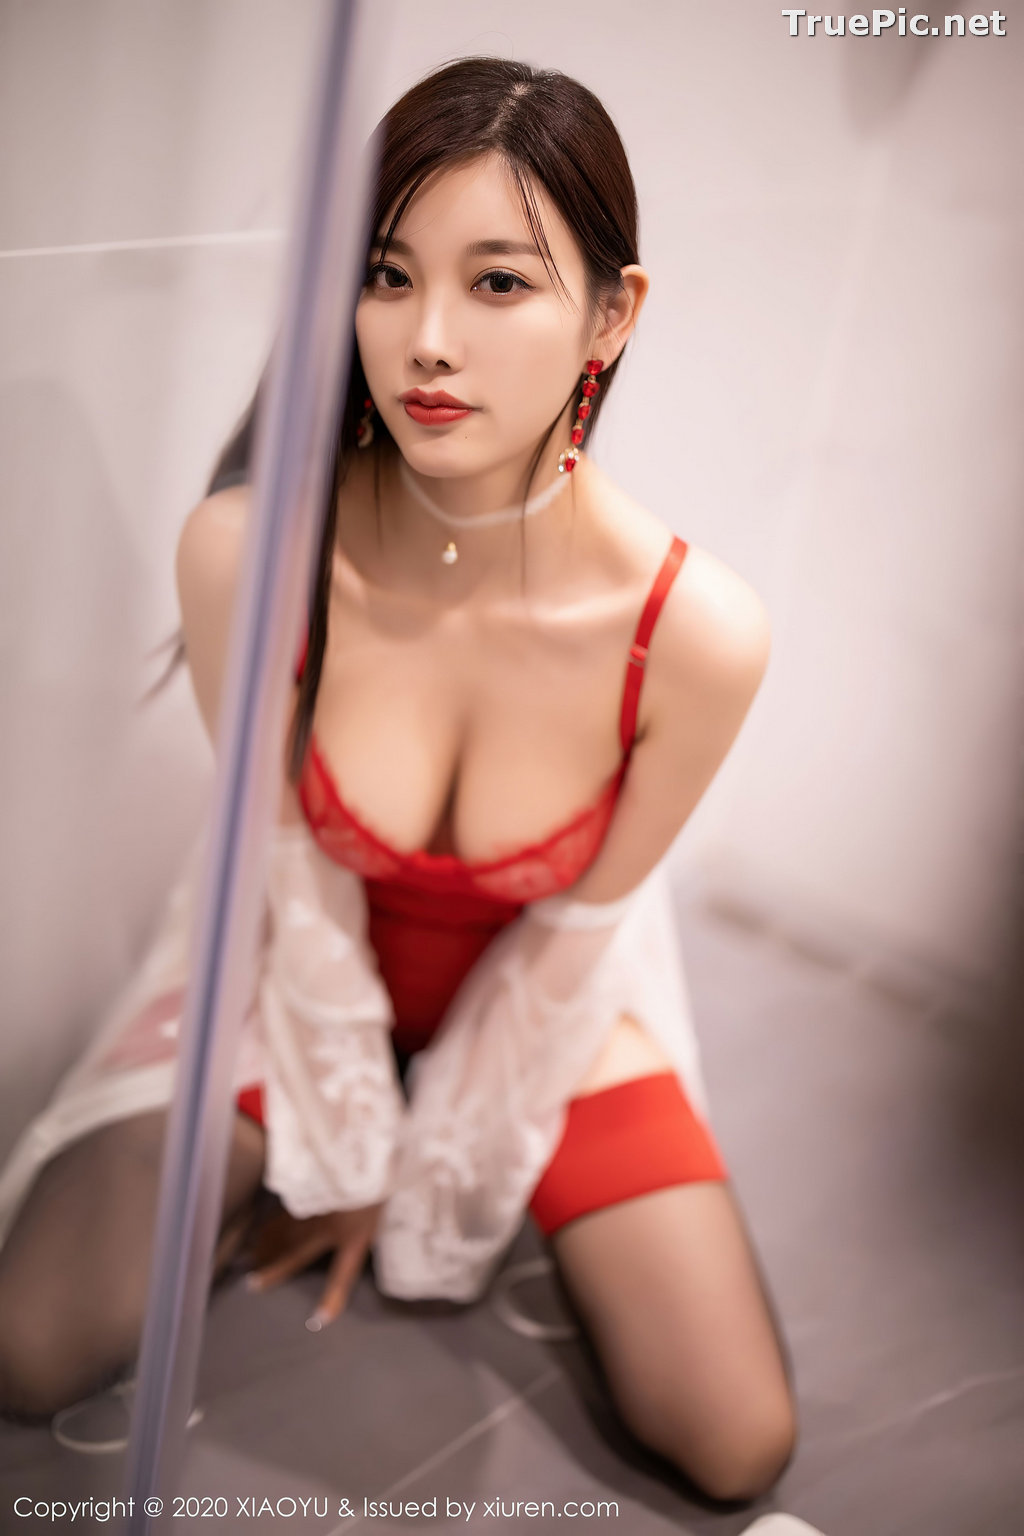 Image XiaoYu Vol.413 - Chinese Model - Yang Chen Chen (杨晨晨sugar)- Red Crystal-clear Lingerie - TruePic.net - Picture-14